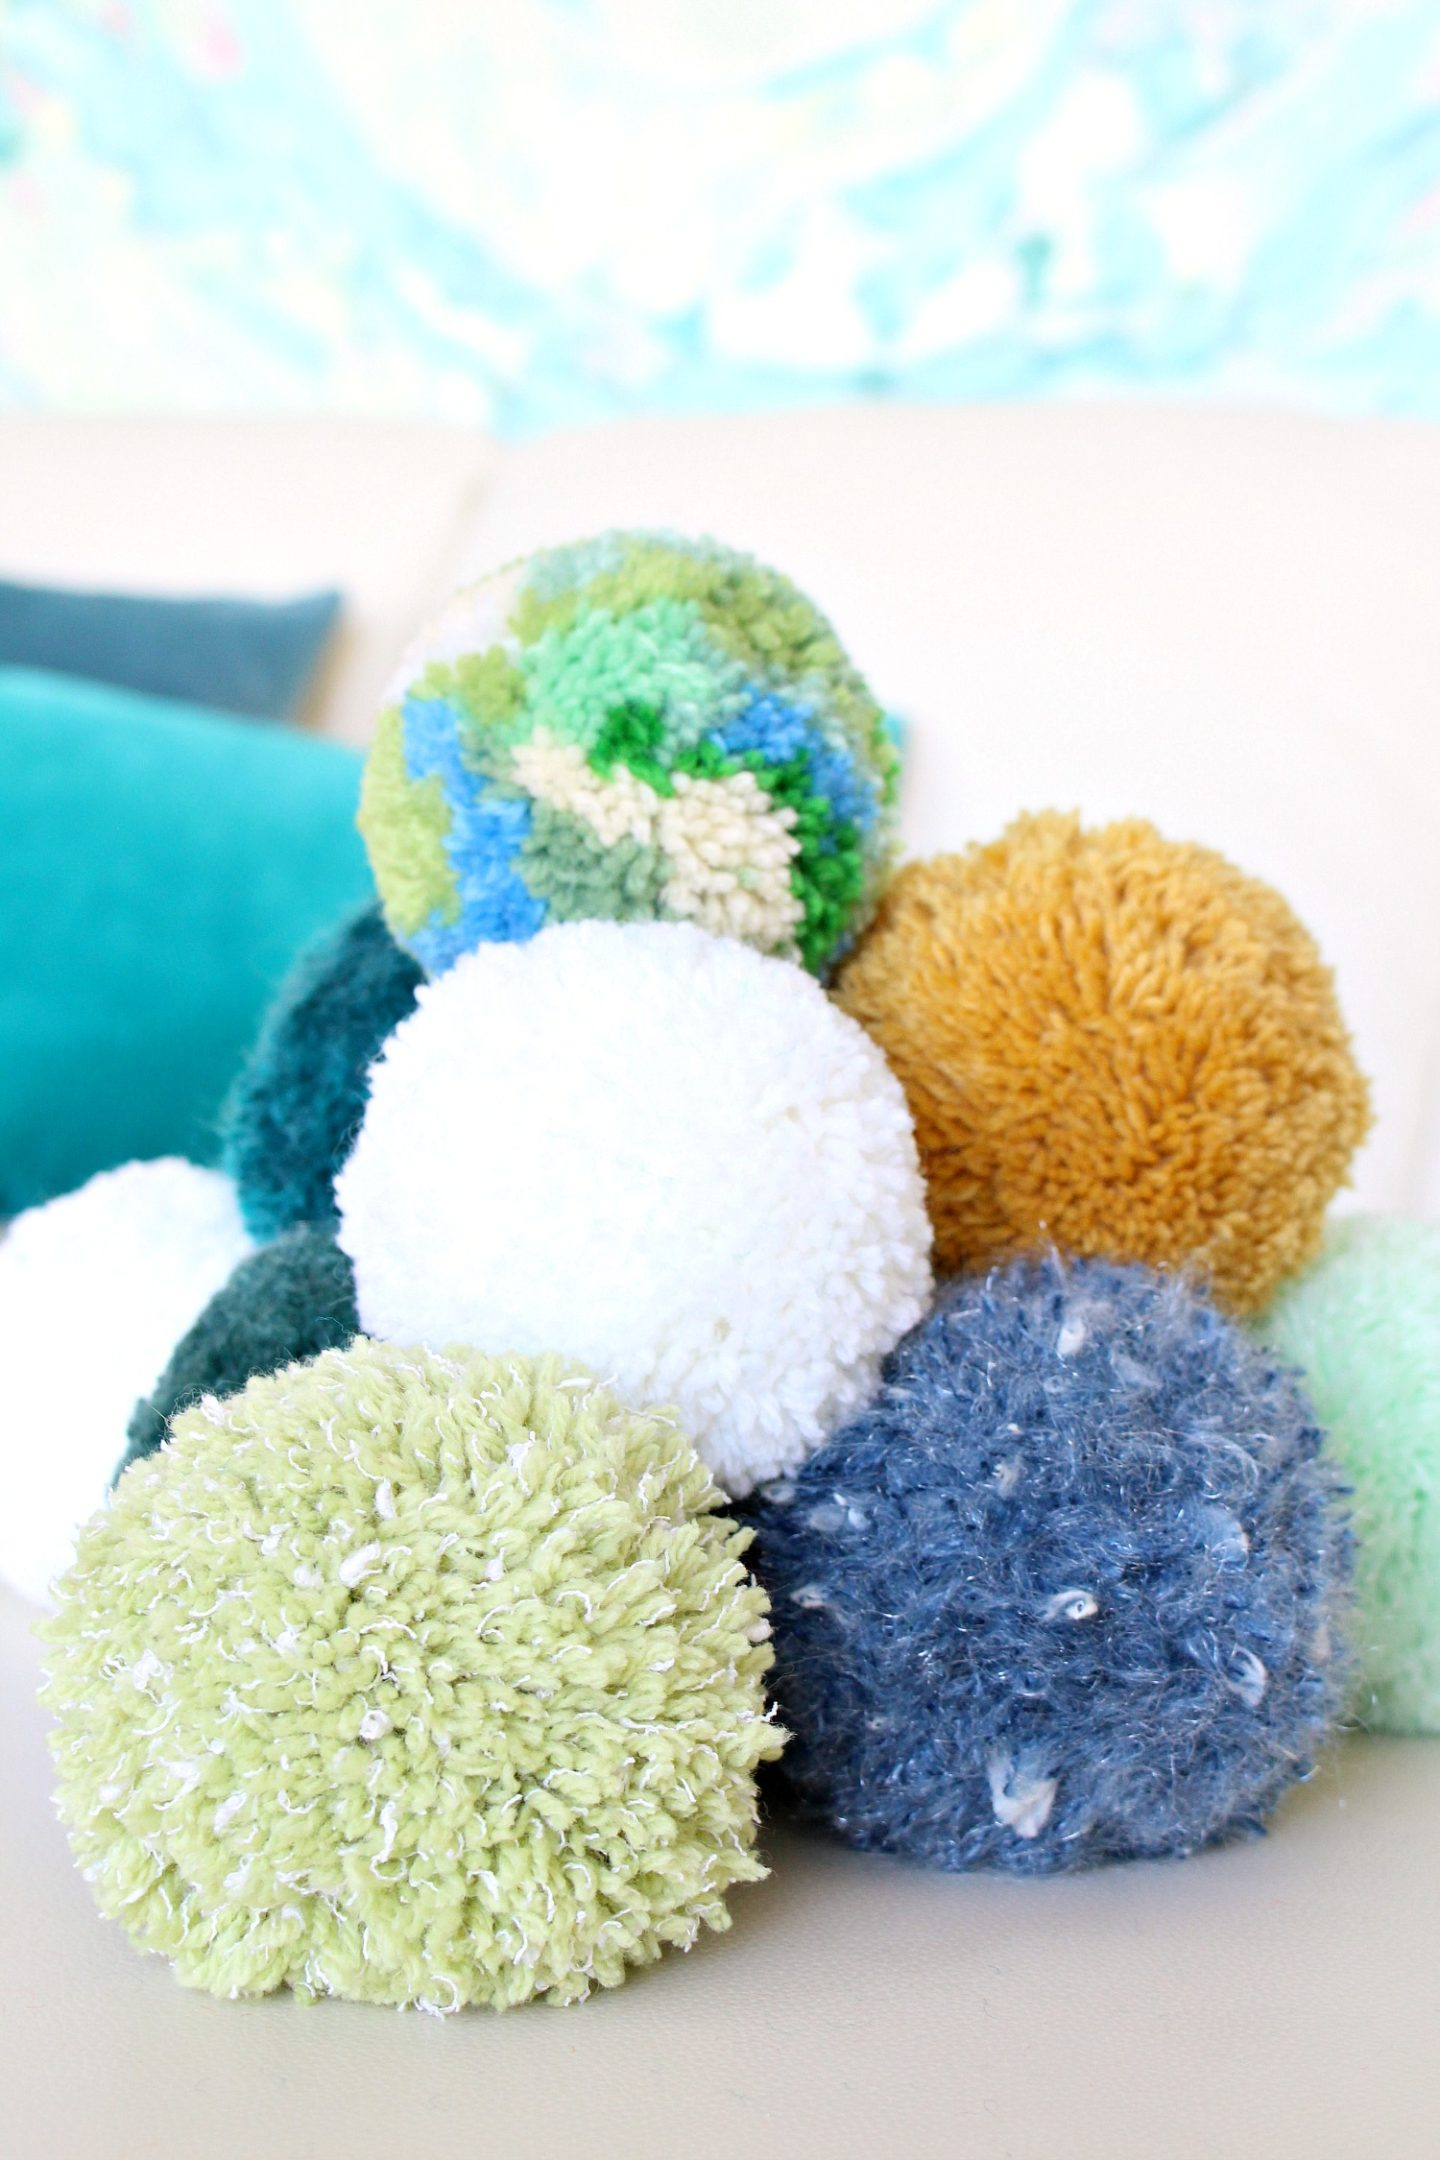 DIY Pom Poms | How to Make Giant Pom Poms + How to Make Dense Pom Poms